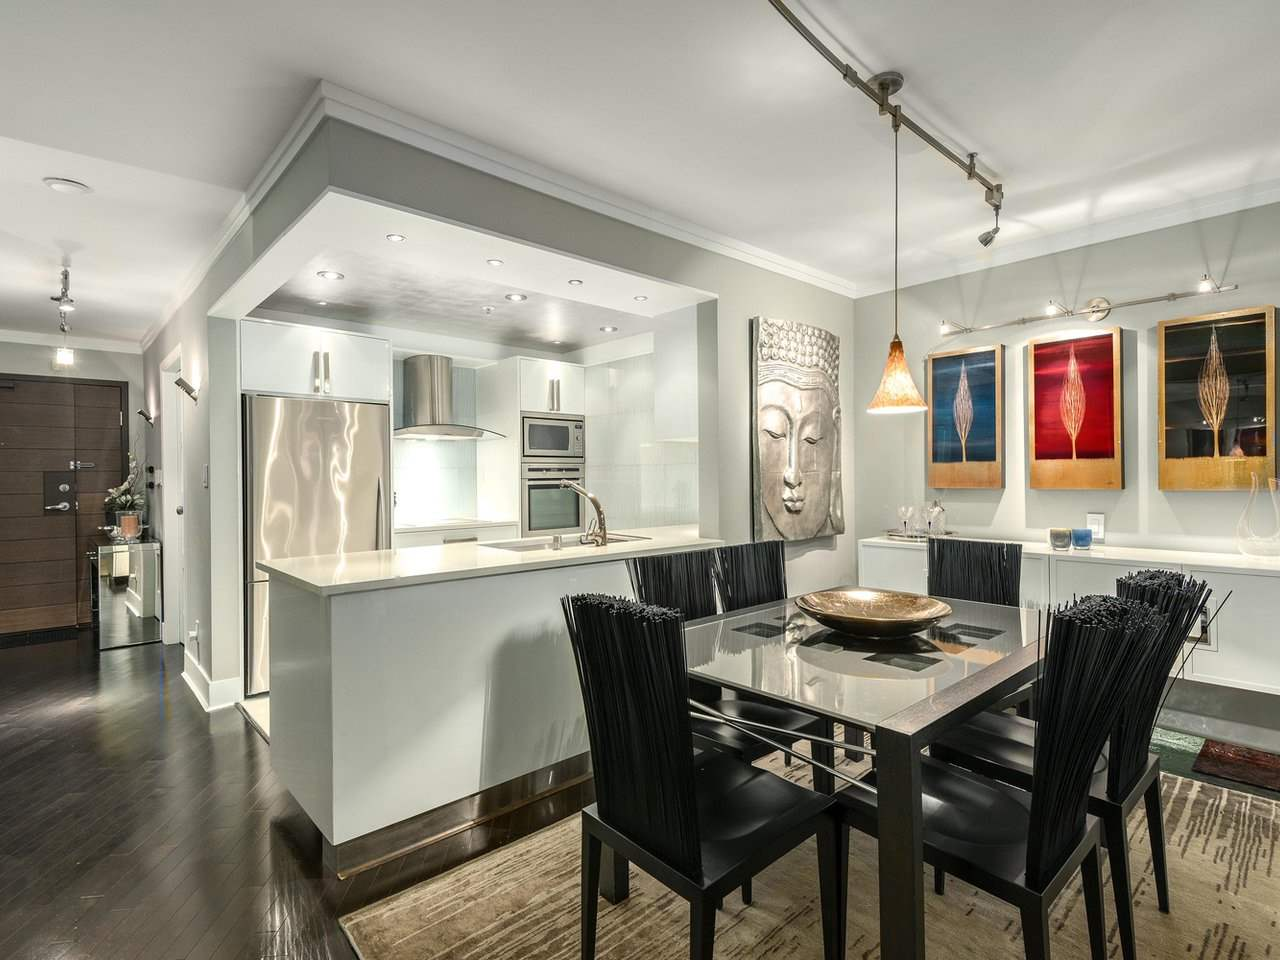 705 1201 MARINASIDE CRESCENT - Yaletown Apartment/Condo for sale, 3 Bedrooms (R2480191) - #16